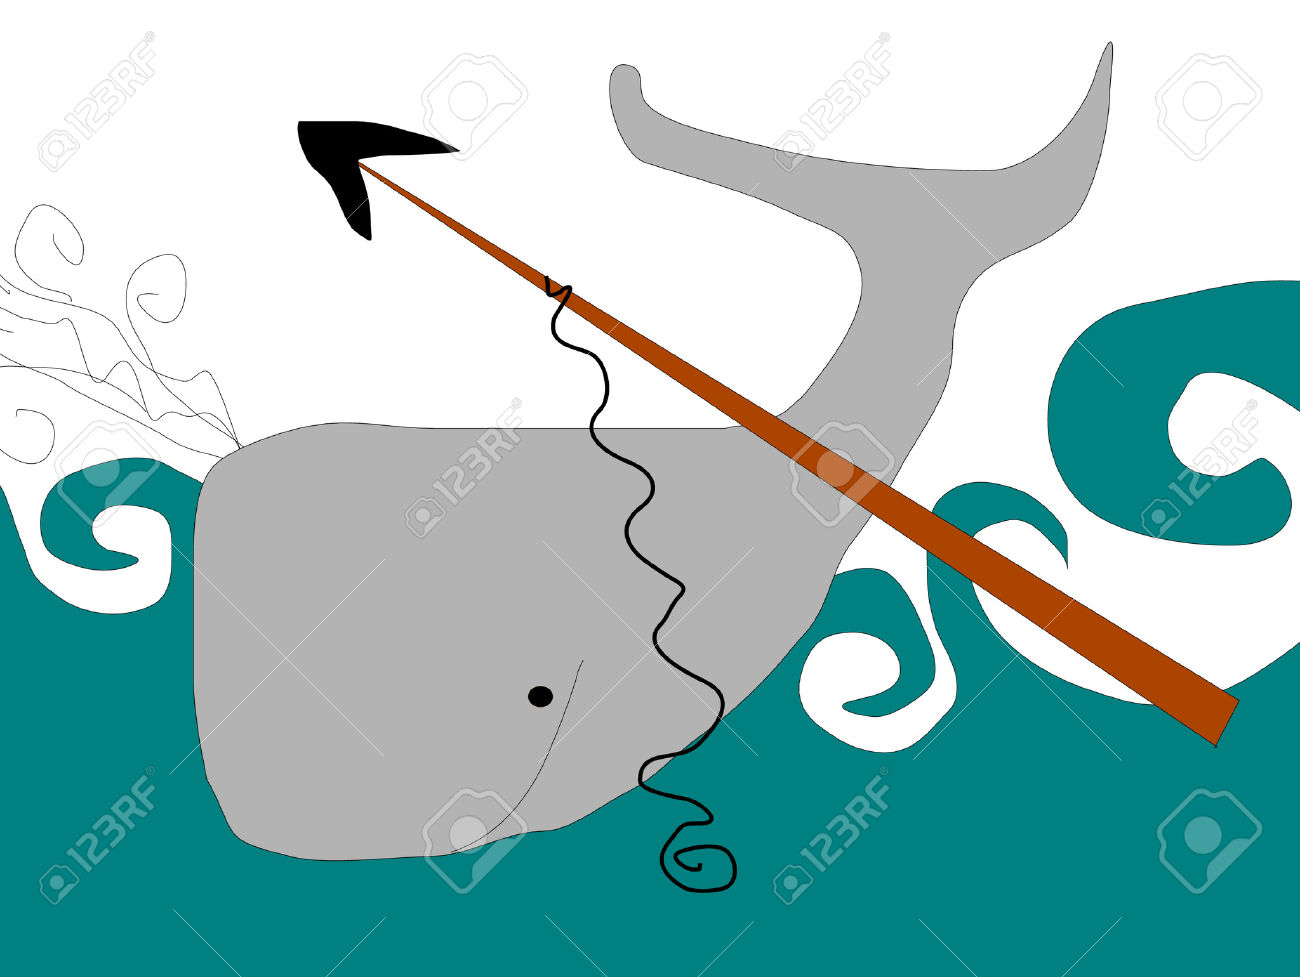 Simple Sketch Of Whaling Royalty Free Cliparts, Vectors, And Stock.